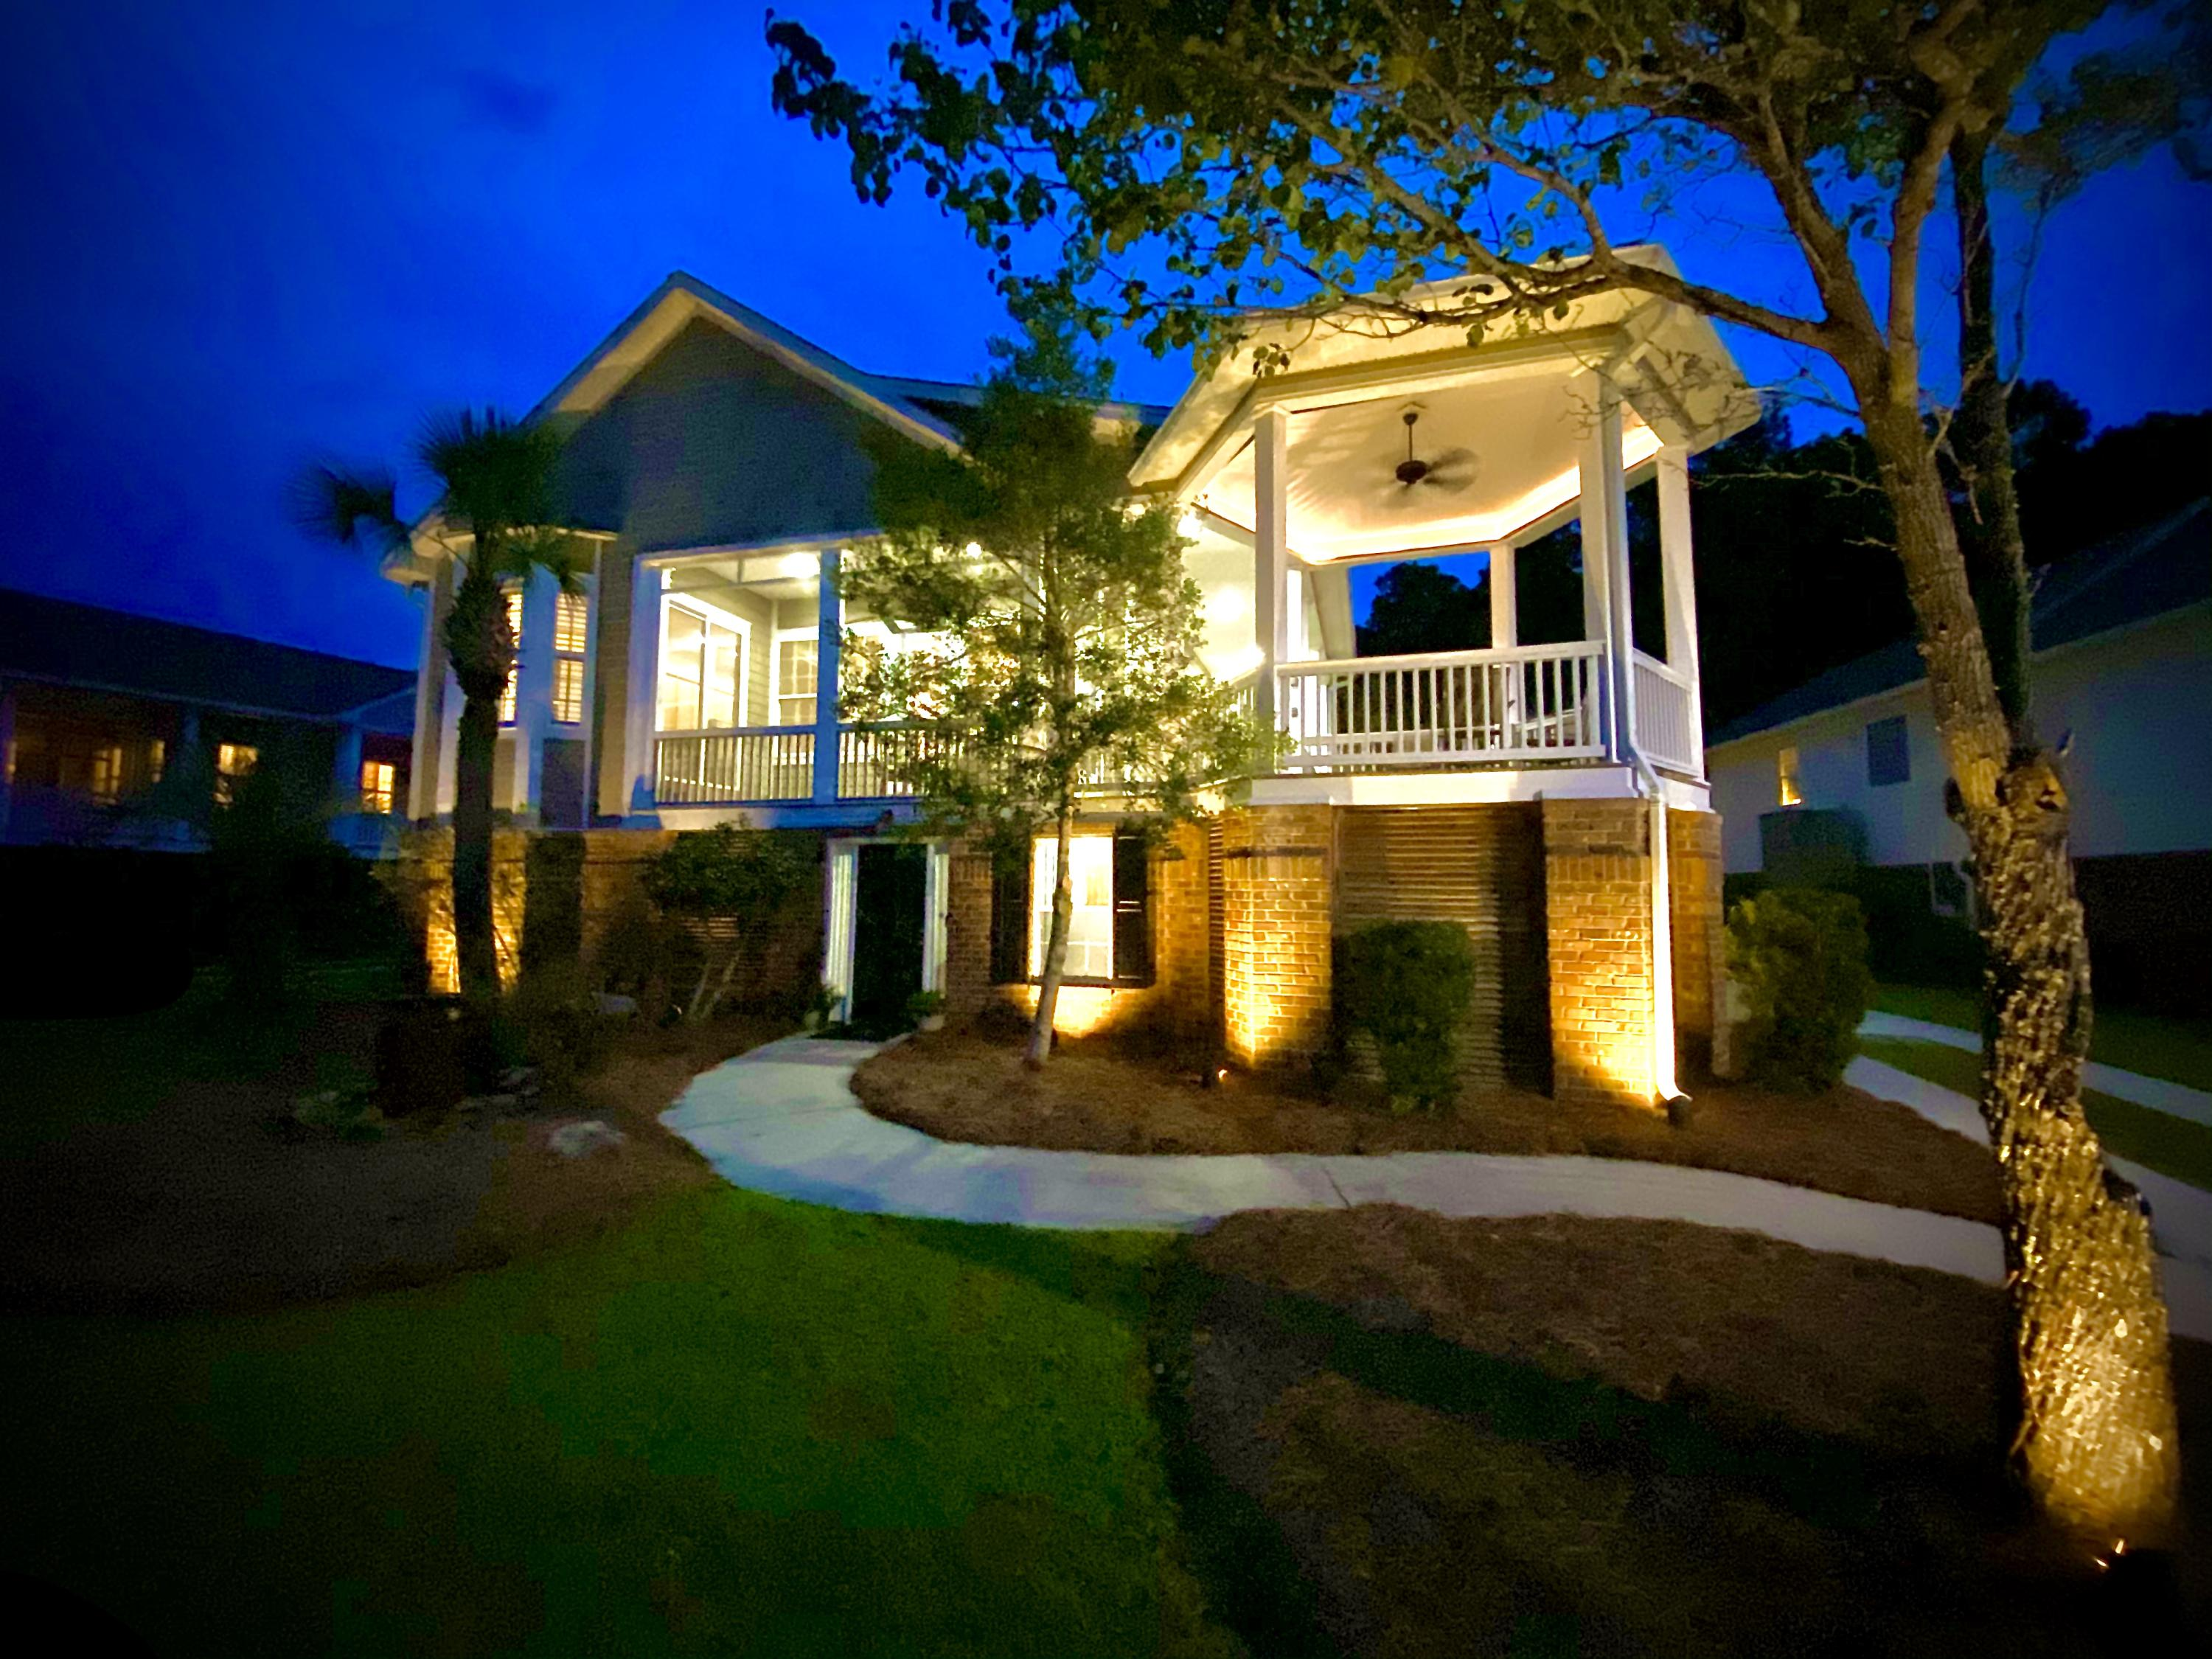 Rivertowne Country Club Homes For Sale - 1721 Rivertowne Country Club, Mount Pleasant, SC - 16